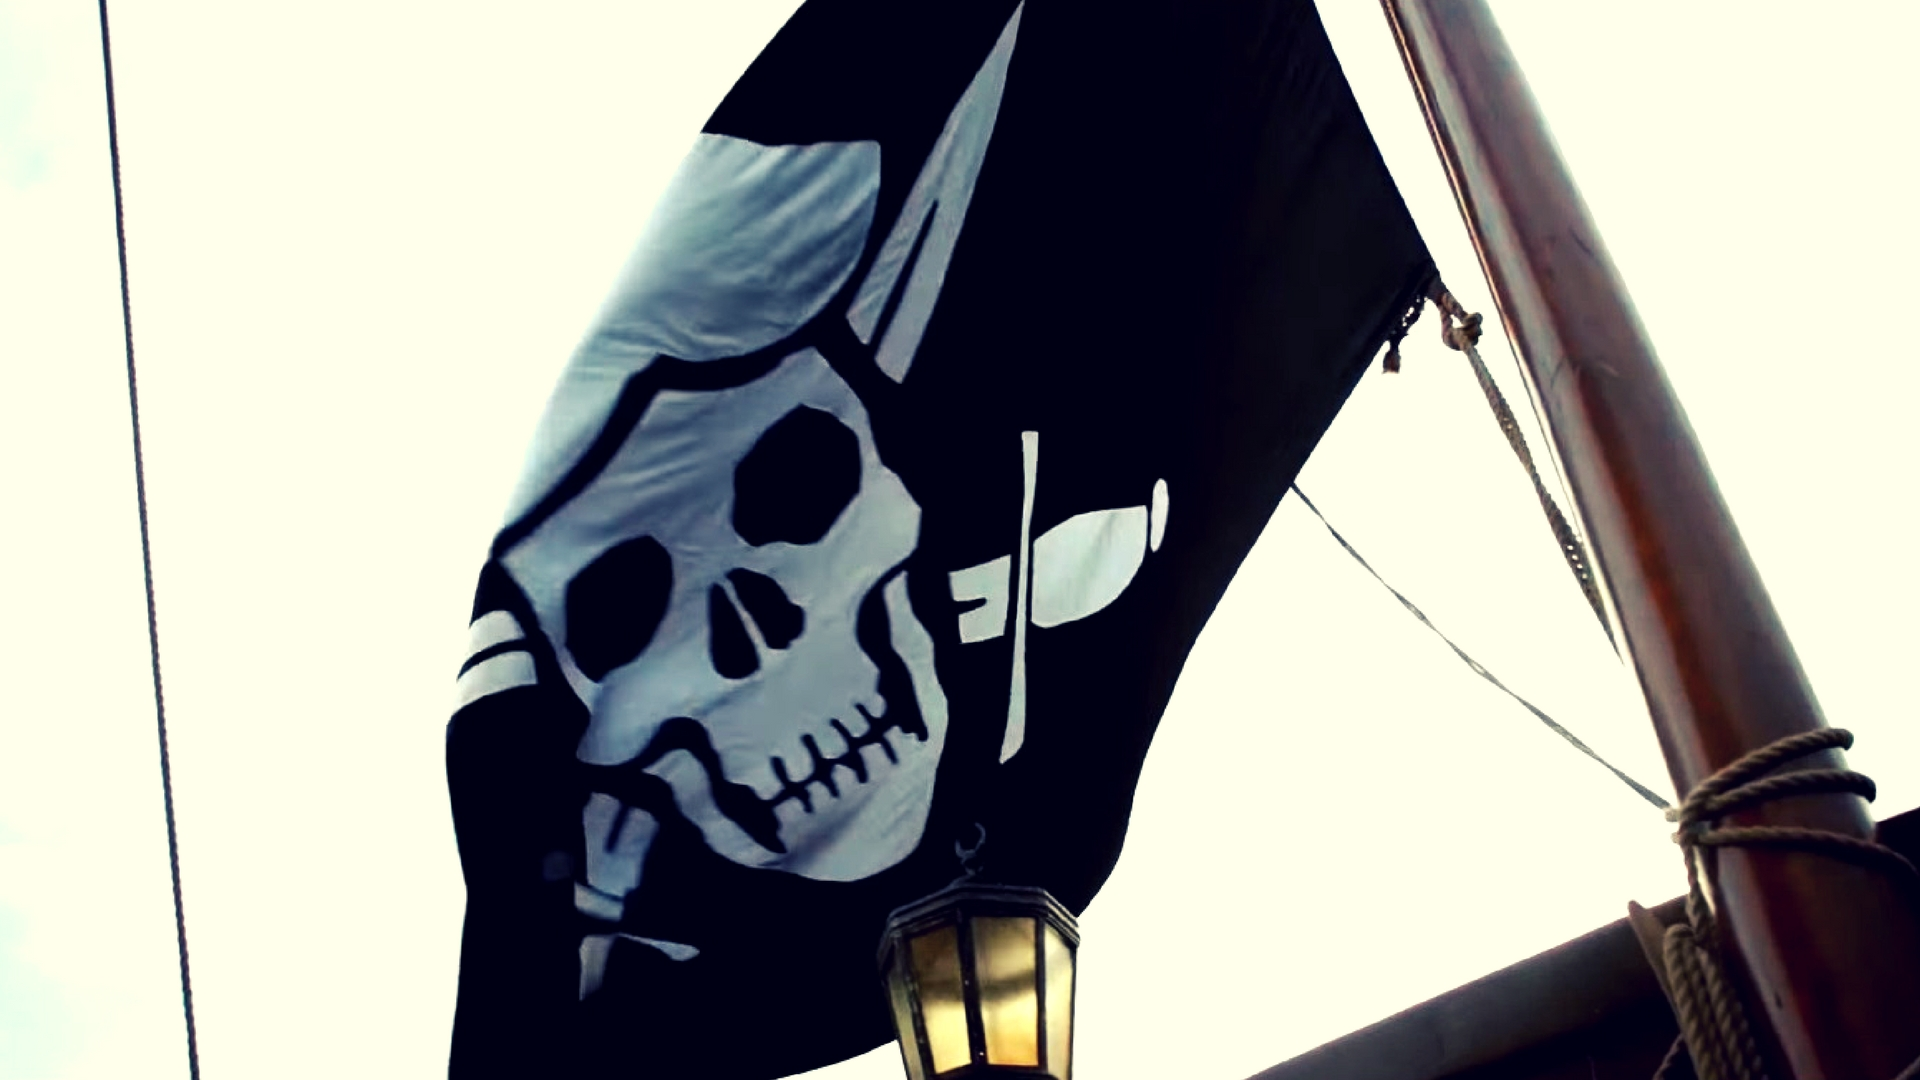 pirate flag in black sails season 4 produced by micheal bay